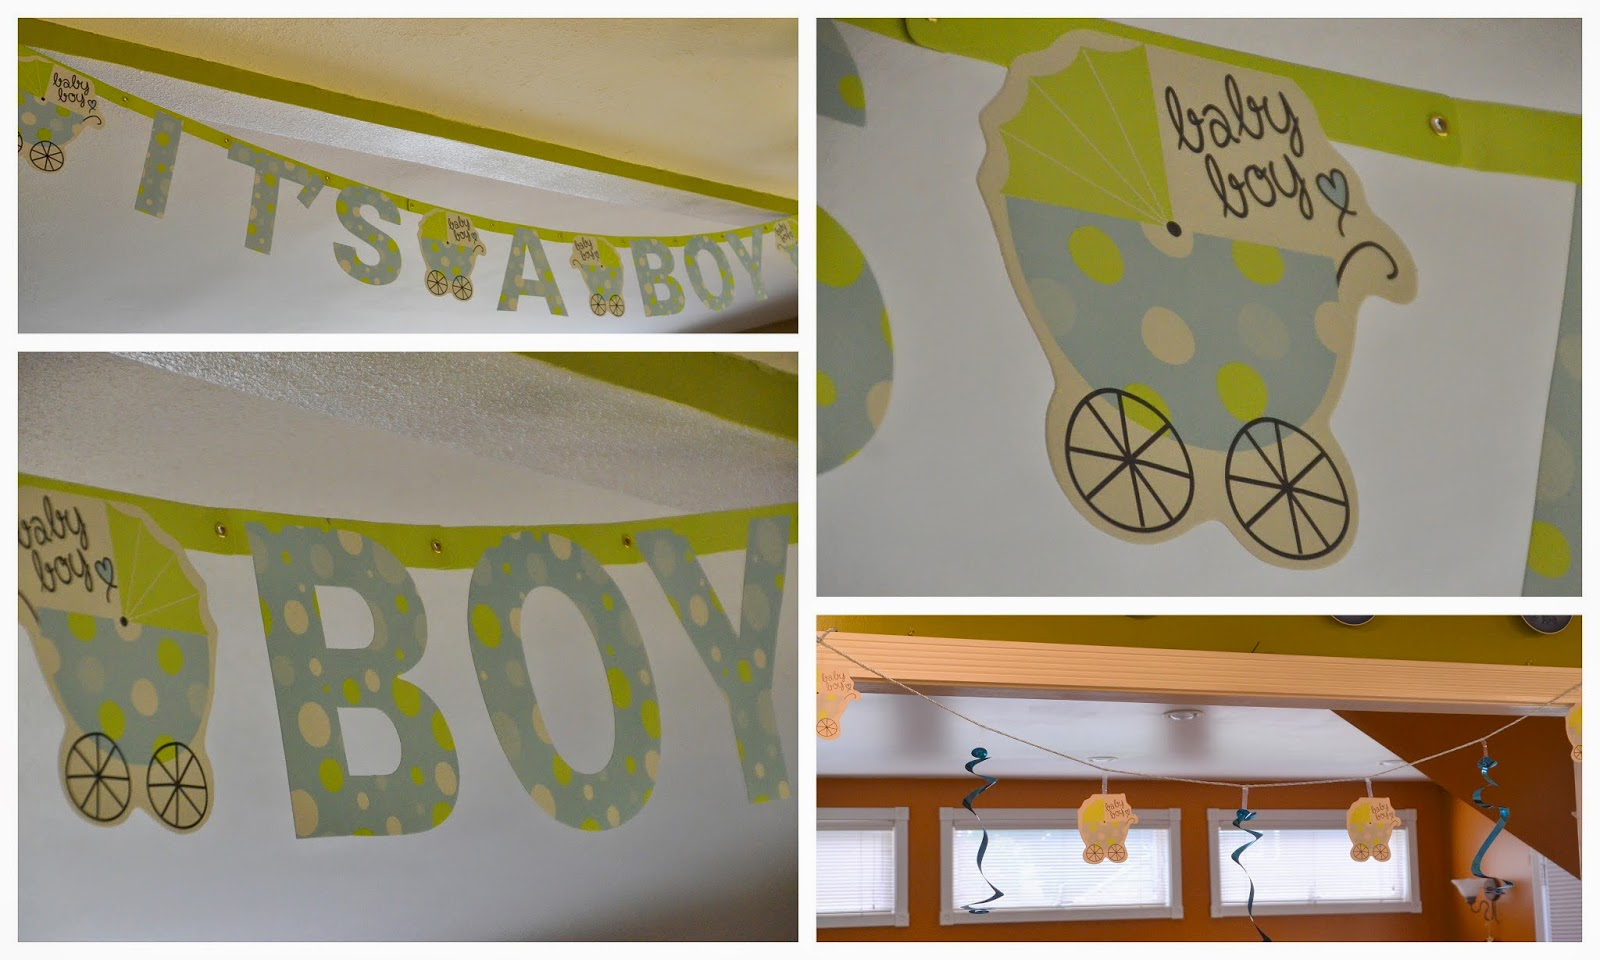 Mennonite girls can cook saturday in ellen 39 s kitchen for Baby shop decoration ideas